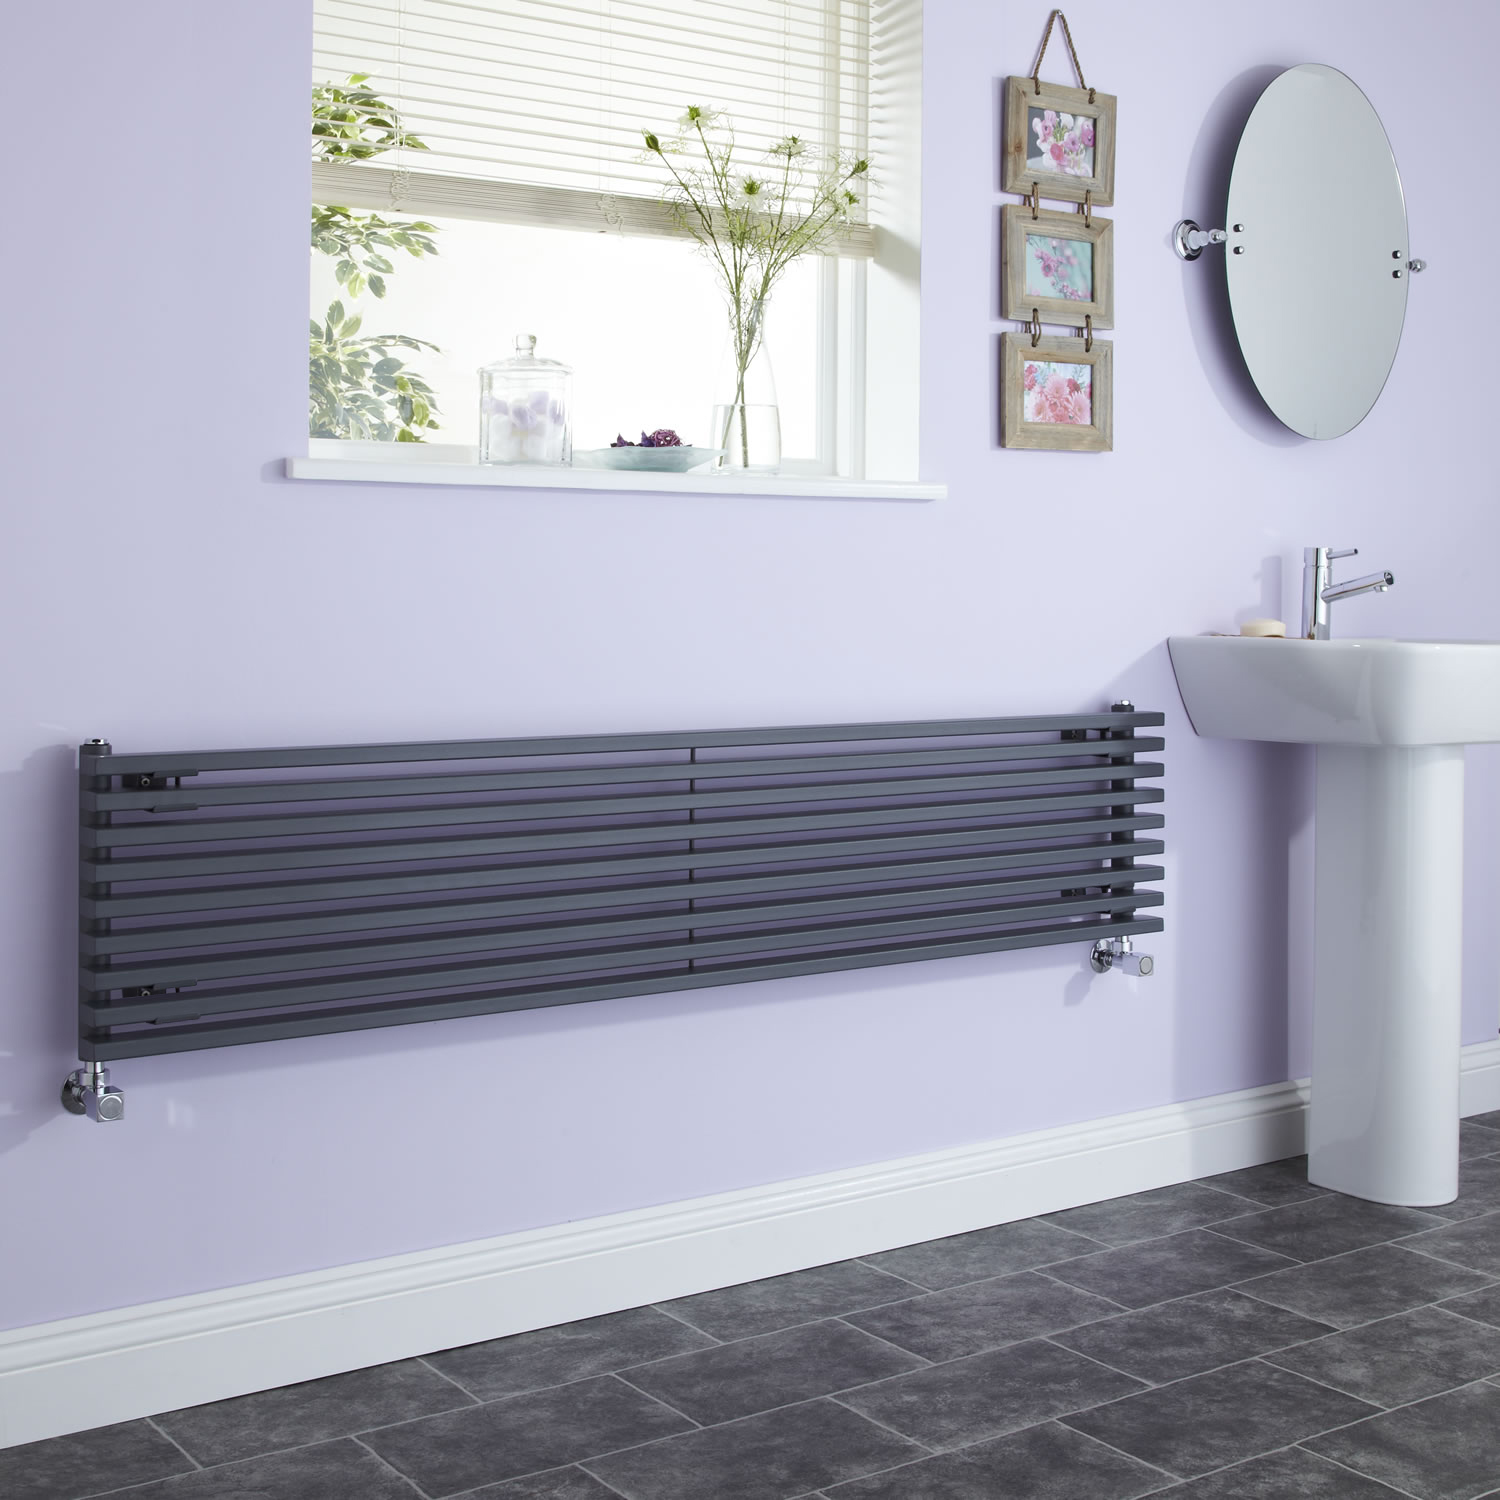 Milano Cayos - Luxury Anthracite Horizontal Designer Radiator Sideways Panels 342mm x 1780mm